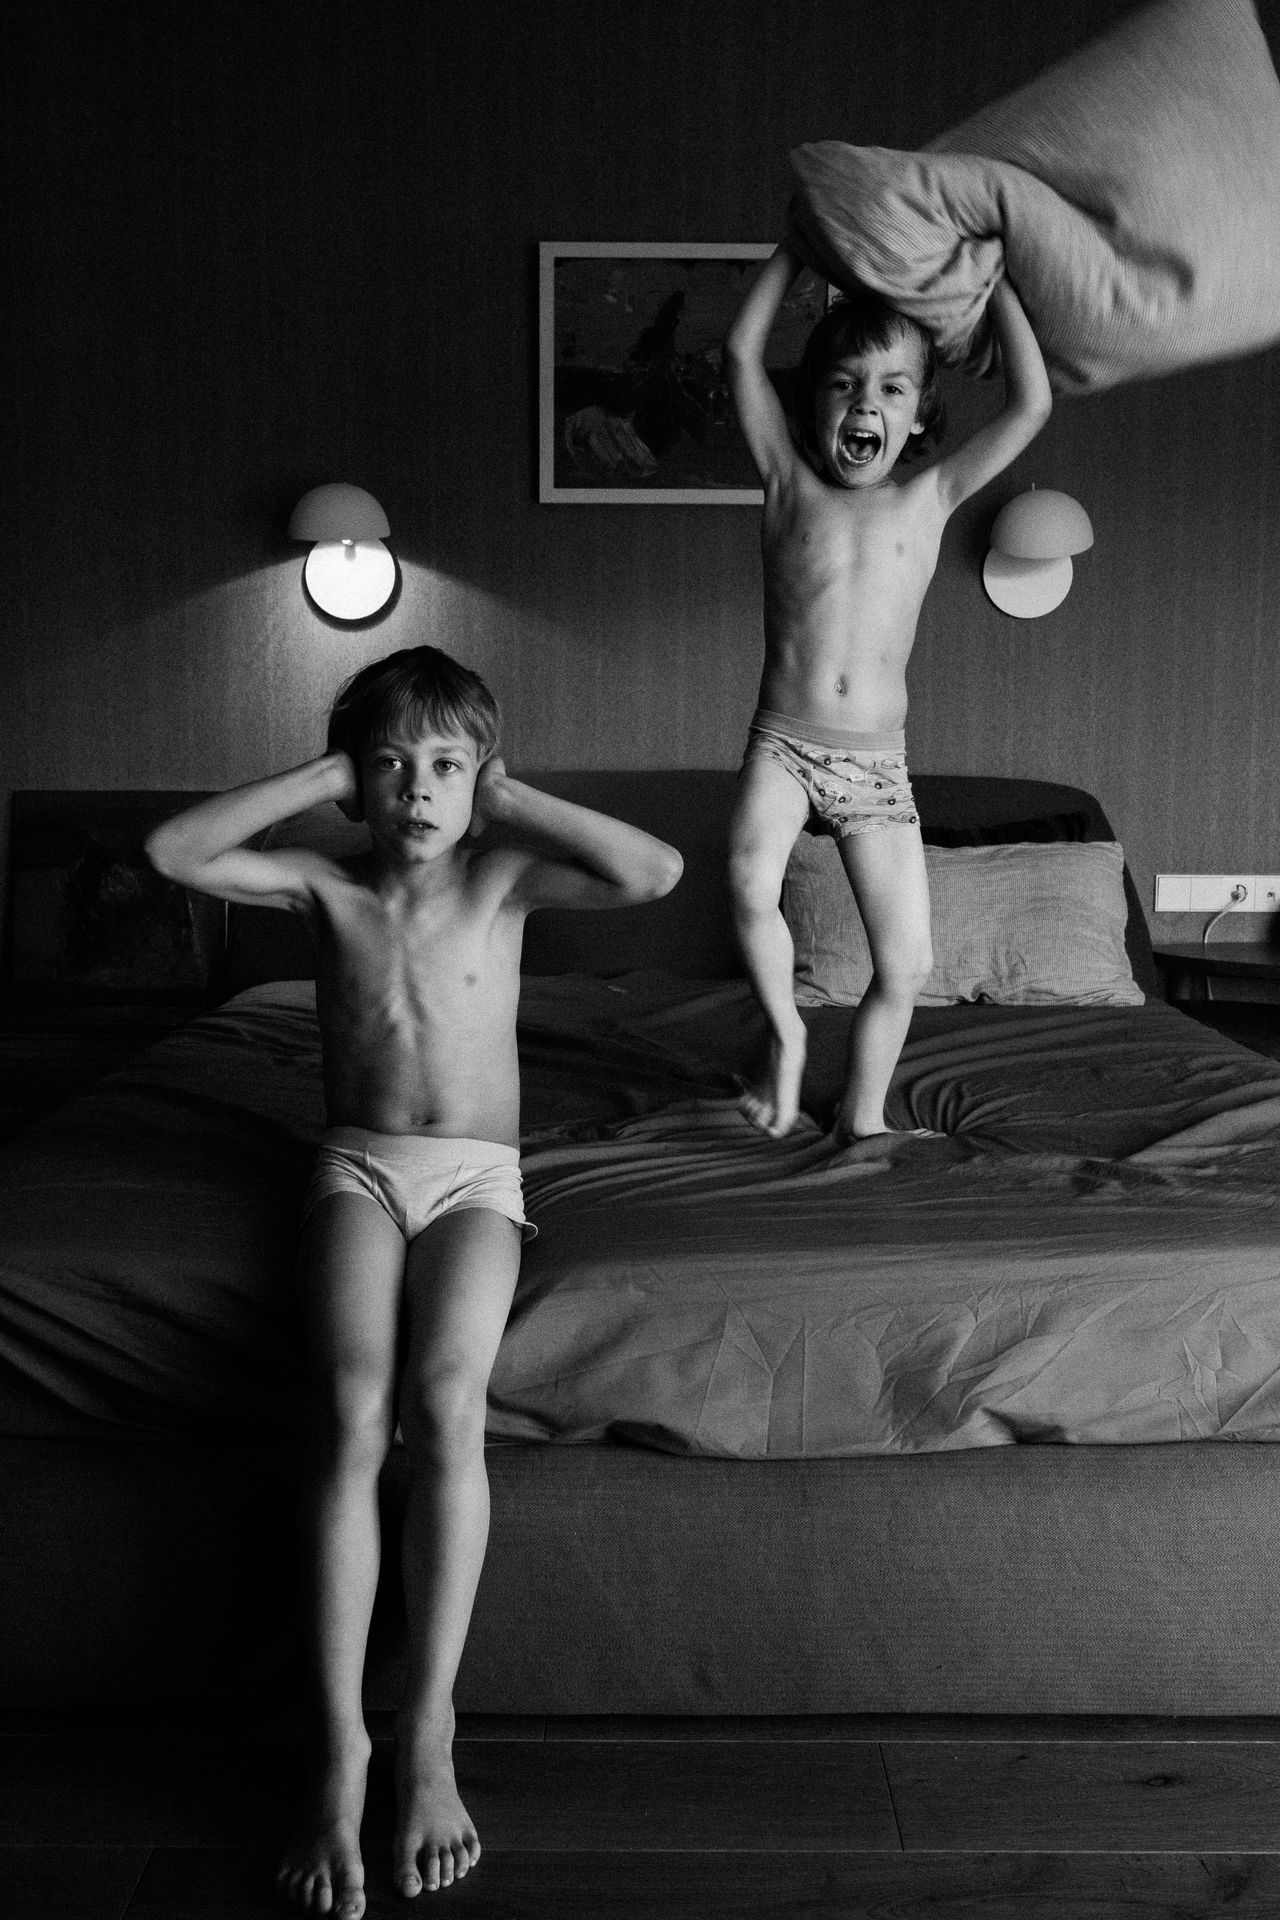 Life with autism spectrum. Autism Autism Awareness Bed Bedroom Childhood Day EyeEm Best Shots Full Length Home Interior Indoors  Leisure Activity Lifestyles People Real People Shirtless The Portraitist - 2017 EyeEm Awards Togetherness Two People Young Adult Young Women